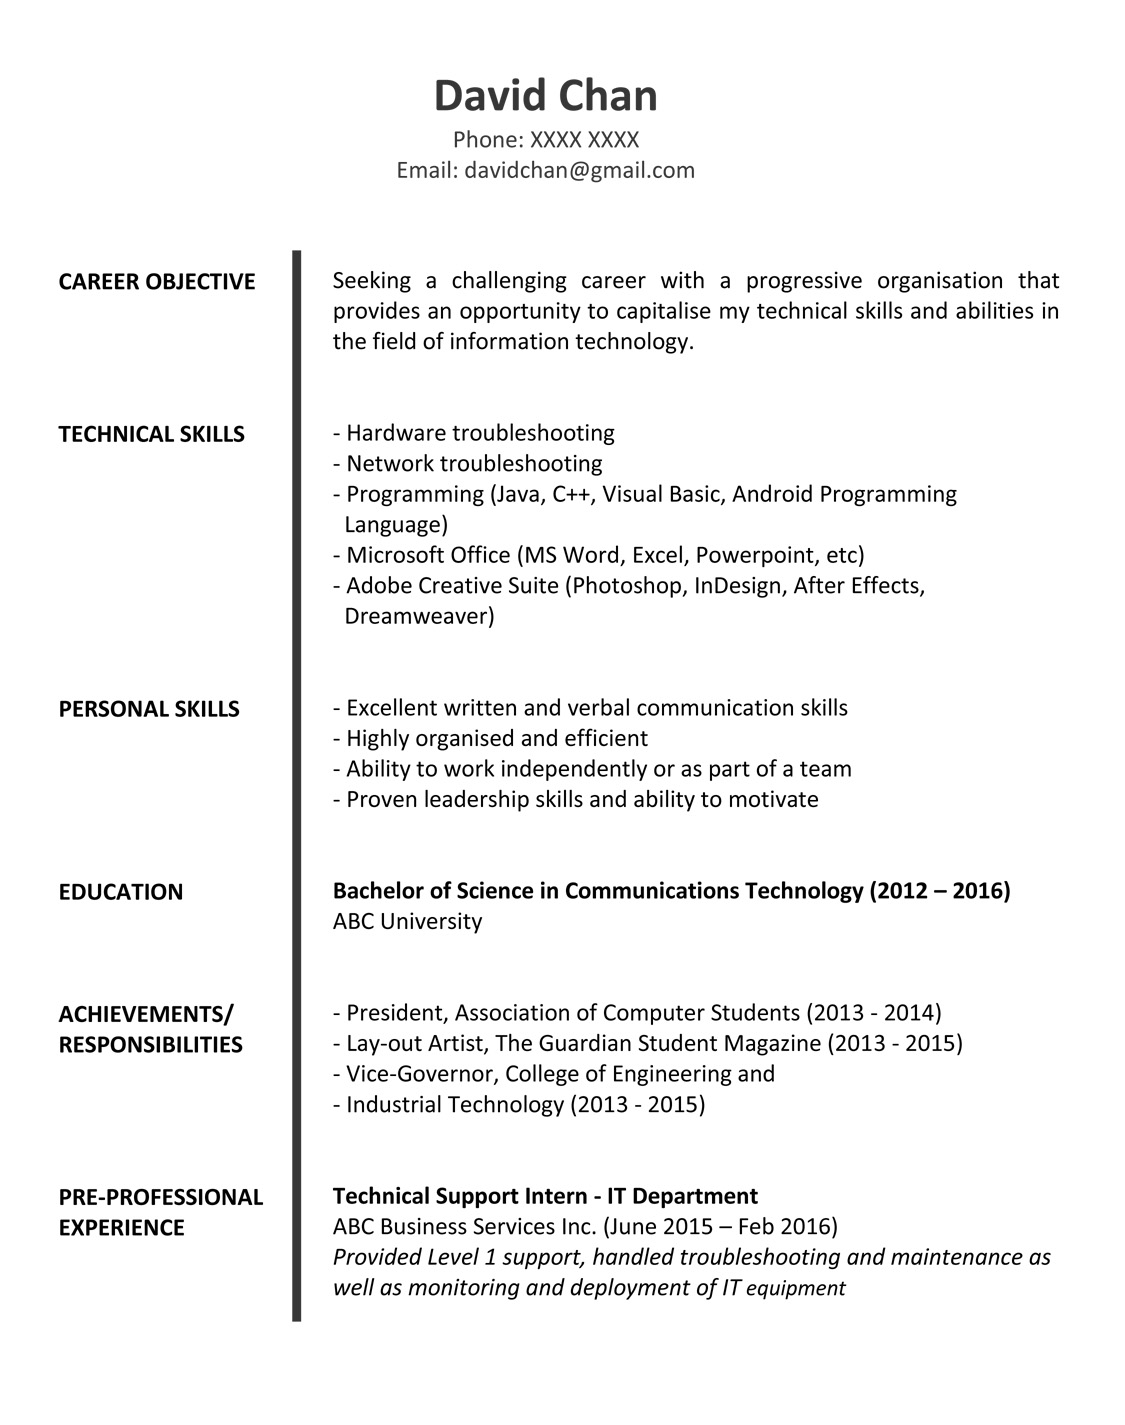 ressume template - sample resume for fresh graduates it professional